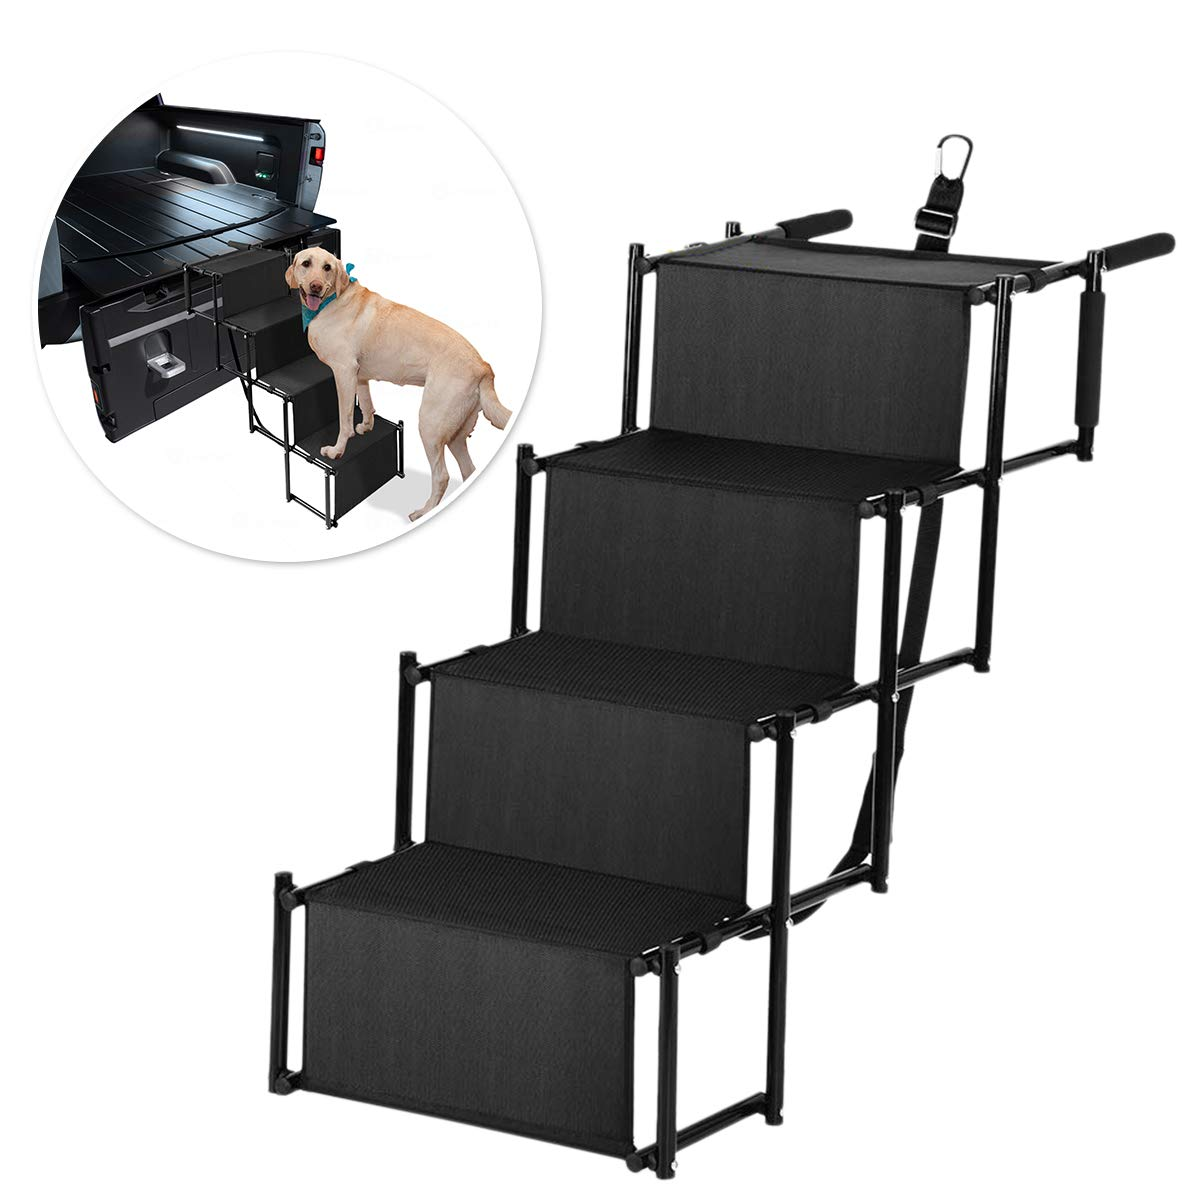 Zone Tech Car Pet Foldable Step Stair – Premium Quality Lightweight Portable Adjustable Metal Frame Folding Ramp Stairs Perfect for Any Size of House Pets